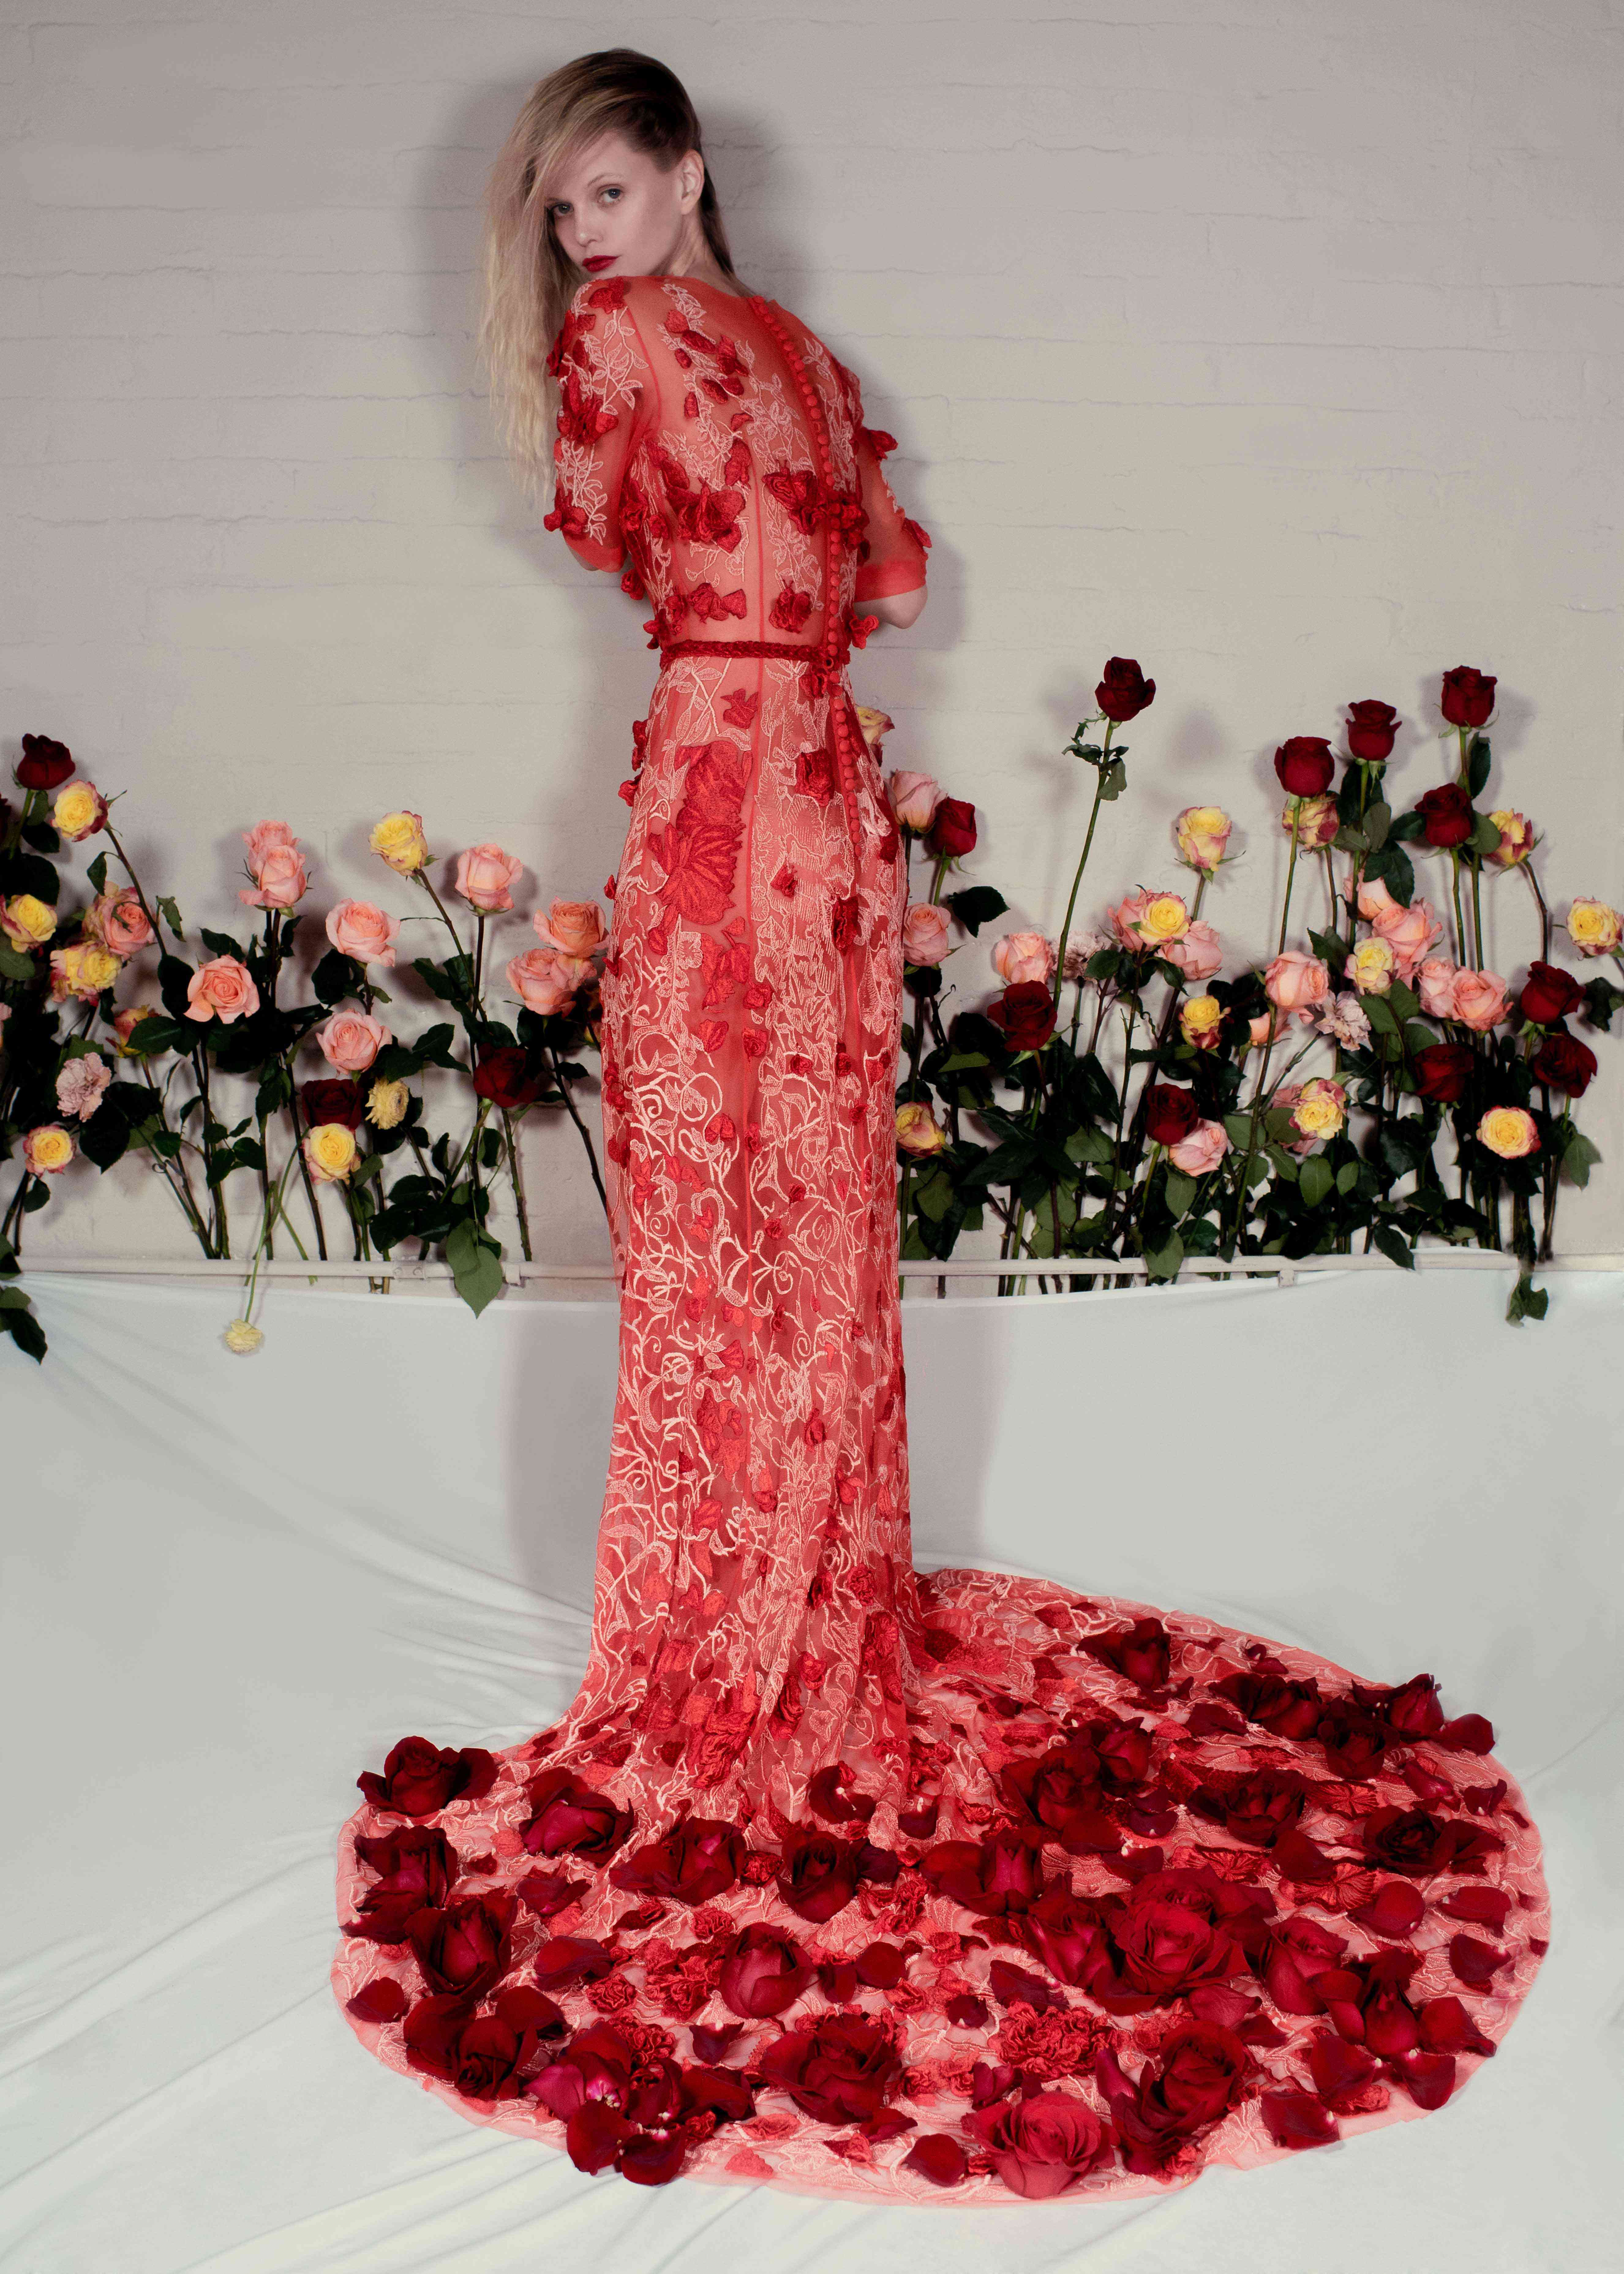 Butterfly Rose red wedding dress